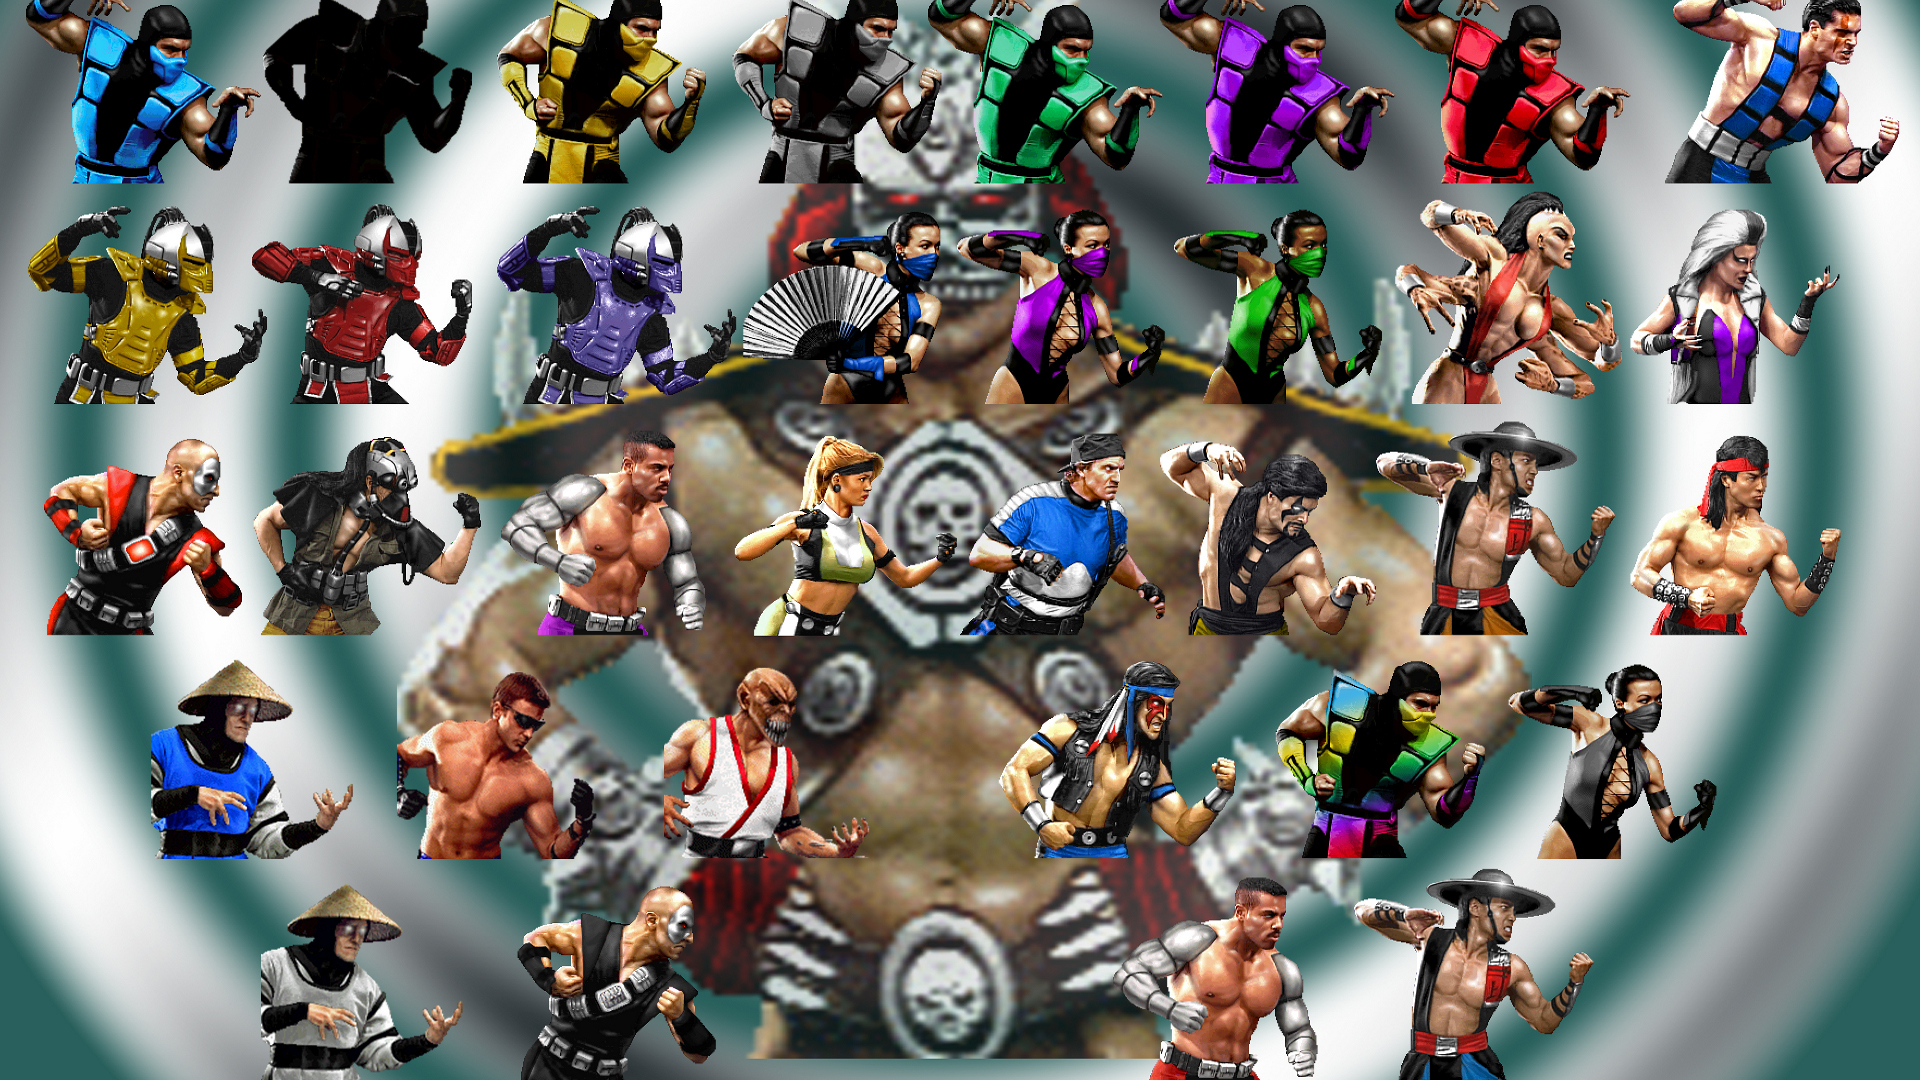 Ultimate Mortal Kombat 3 Details